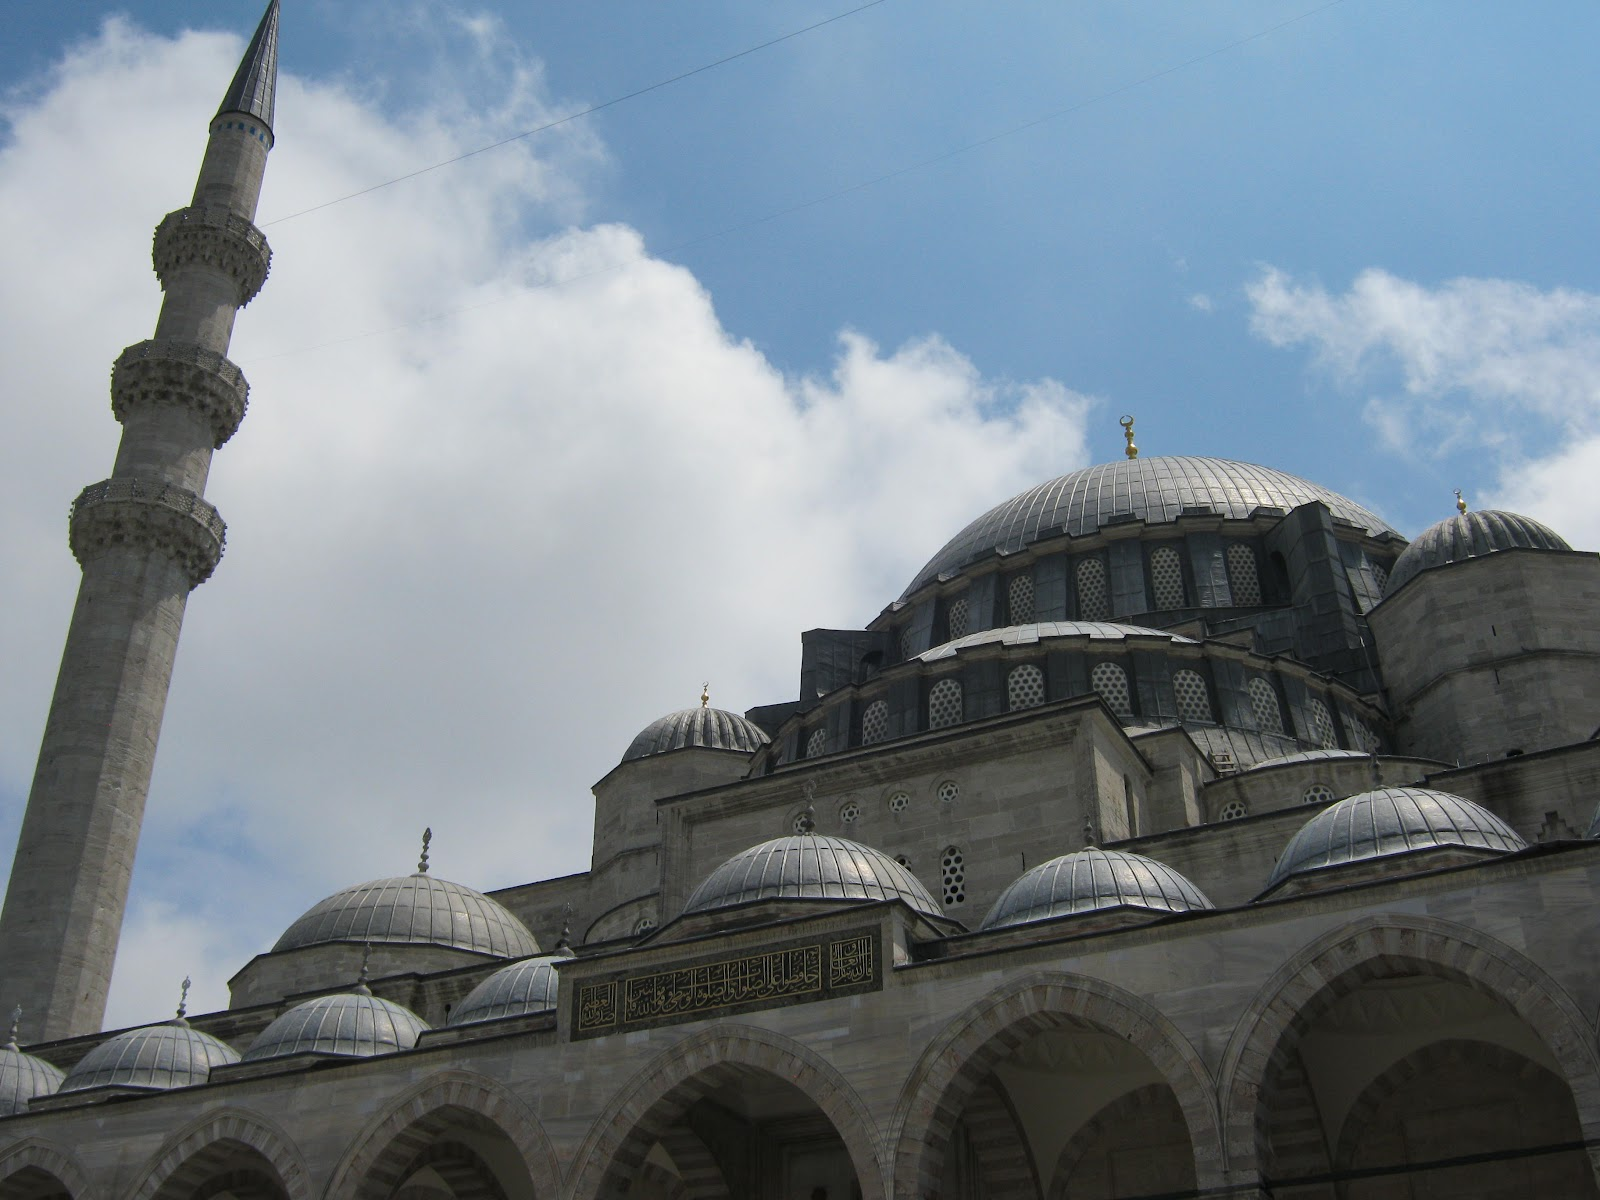 Blogging from Turkey: The renovated Suleymaniye mosque ...